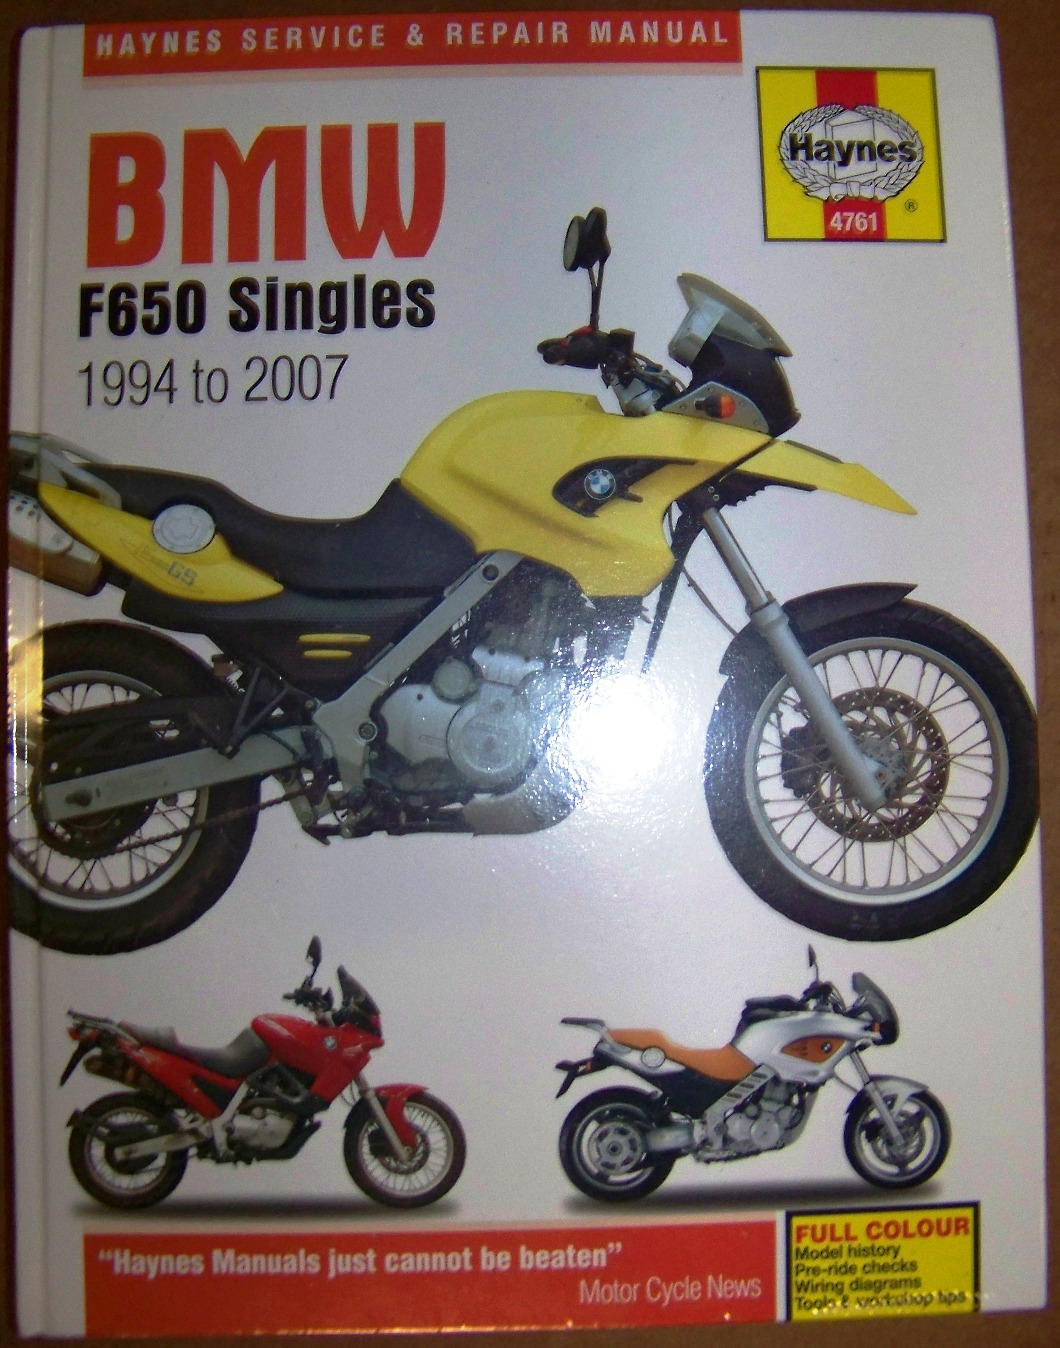 2007 Bmw F650gs Wiring Diagram